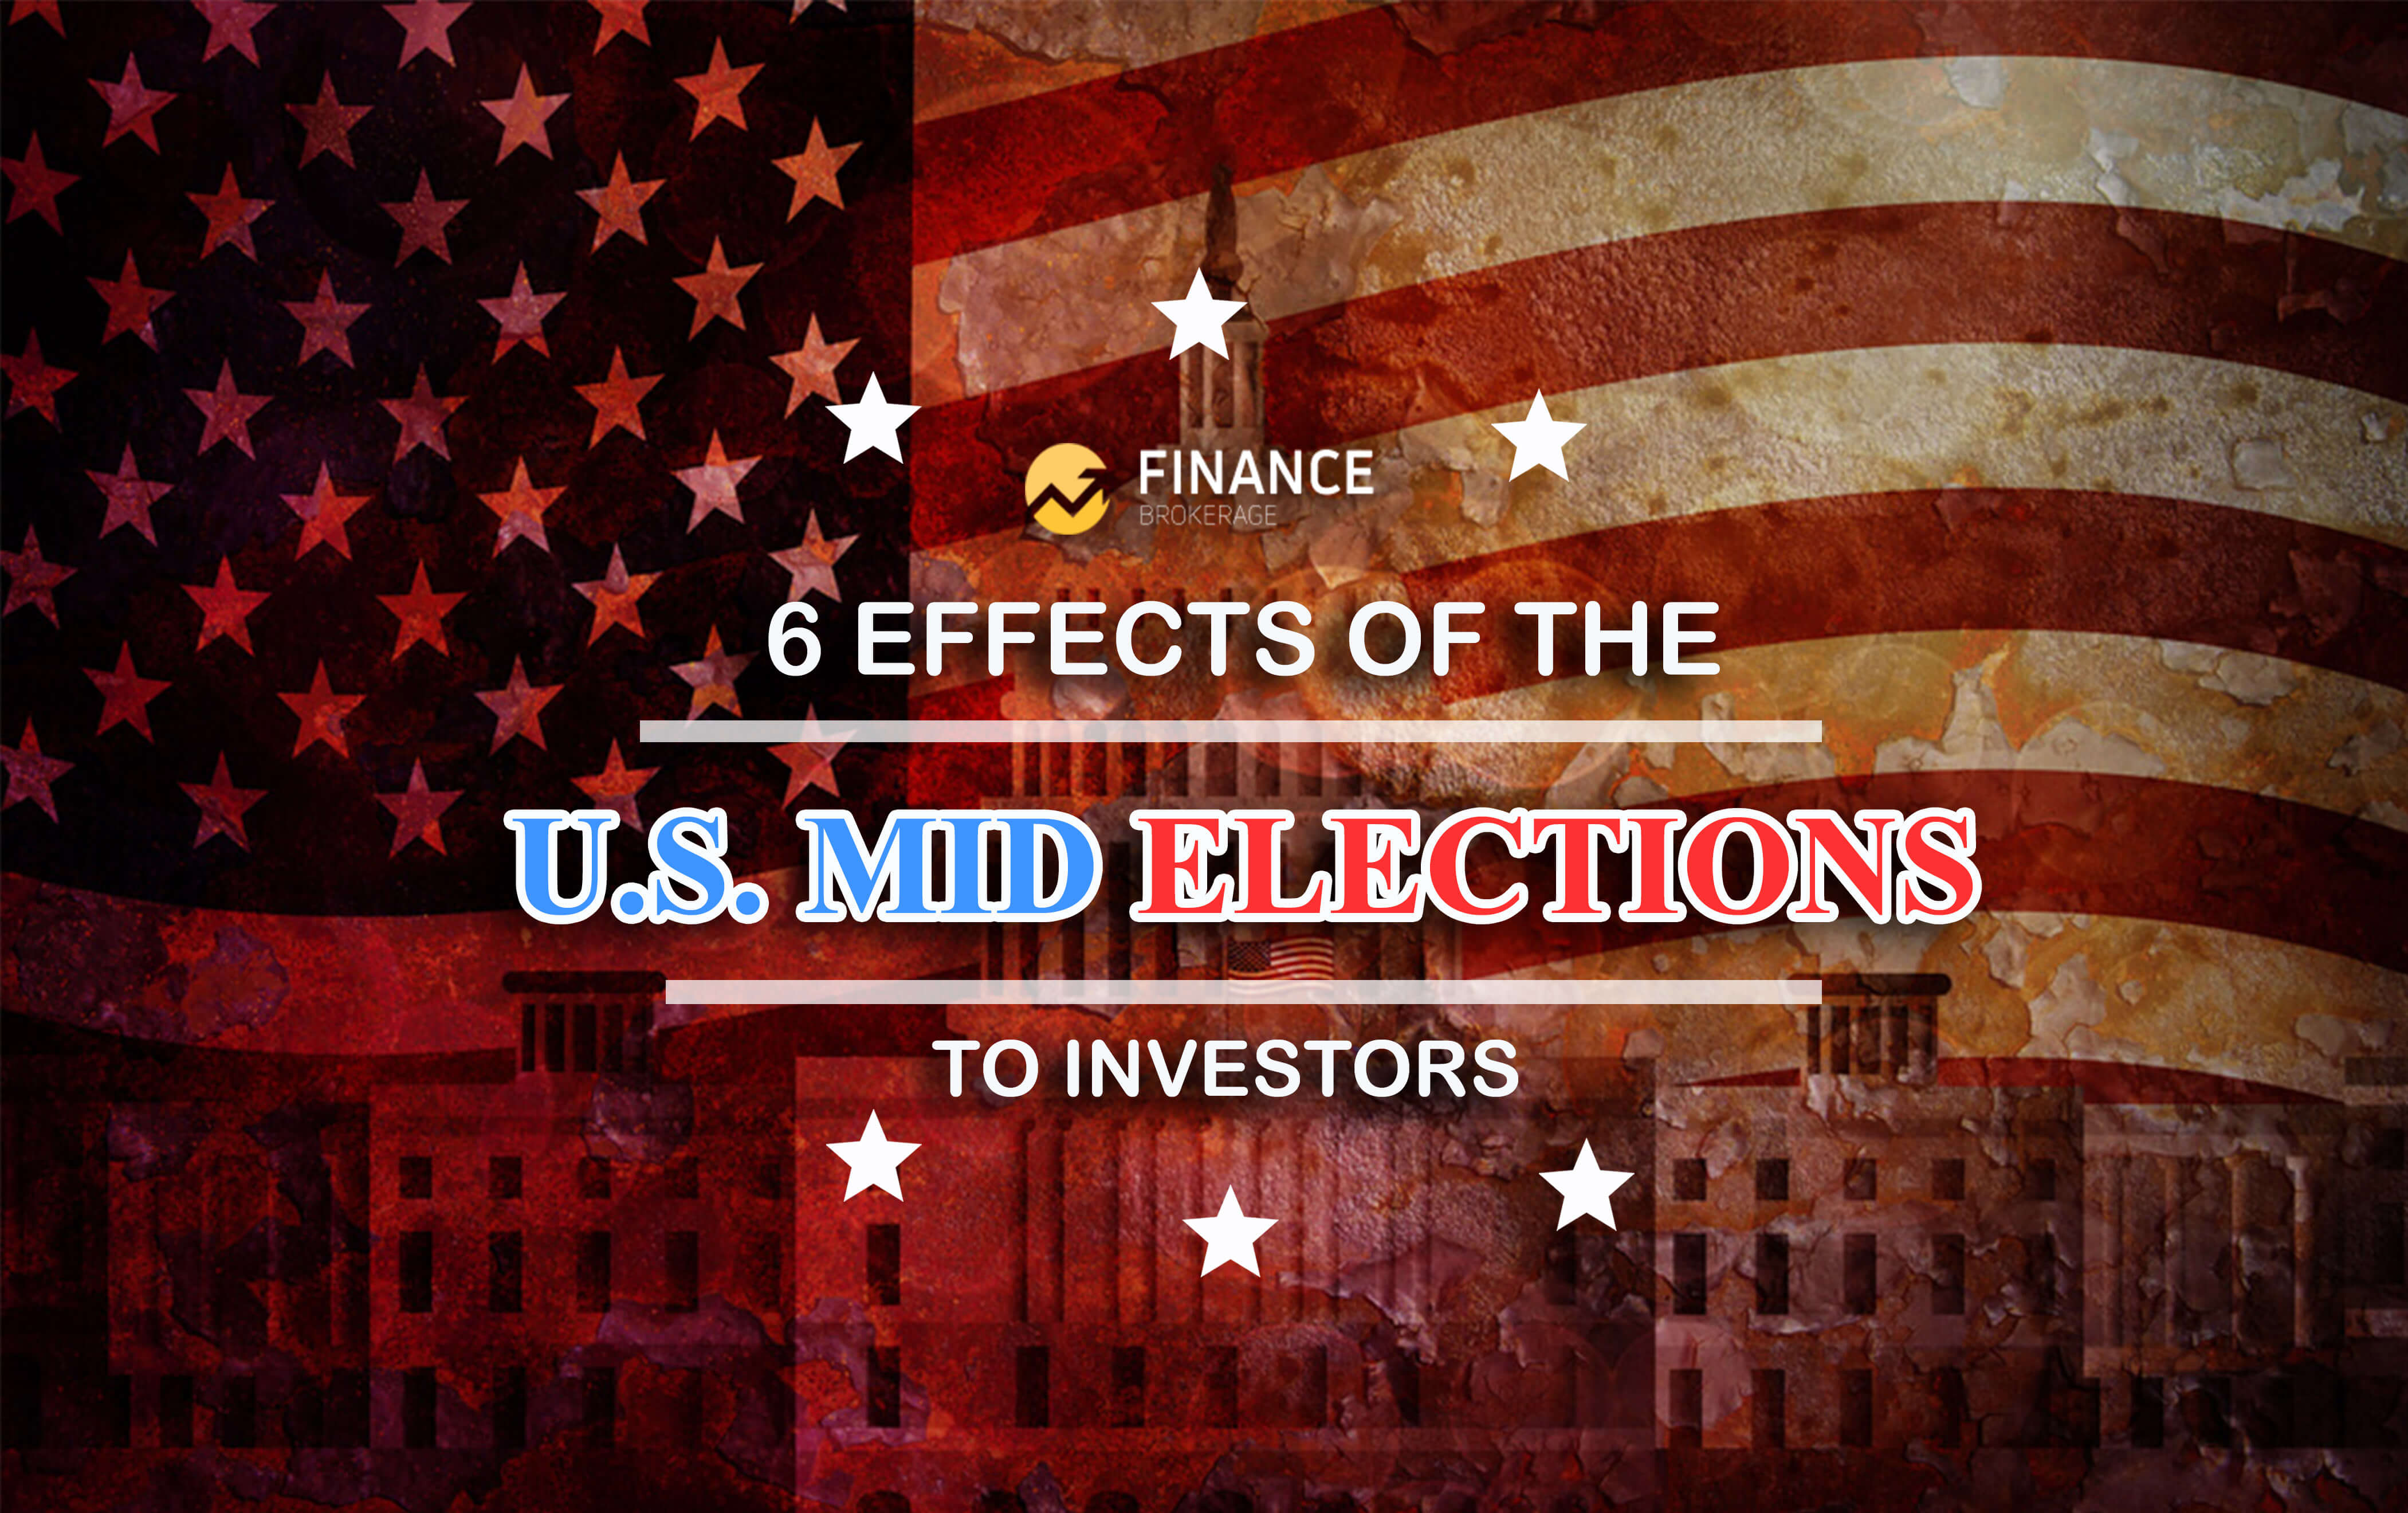 FinanceBrokerage - 6 Effects of the U.S. Mid Elections to Investors